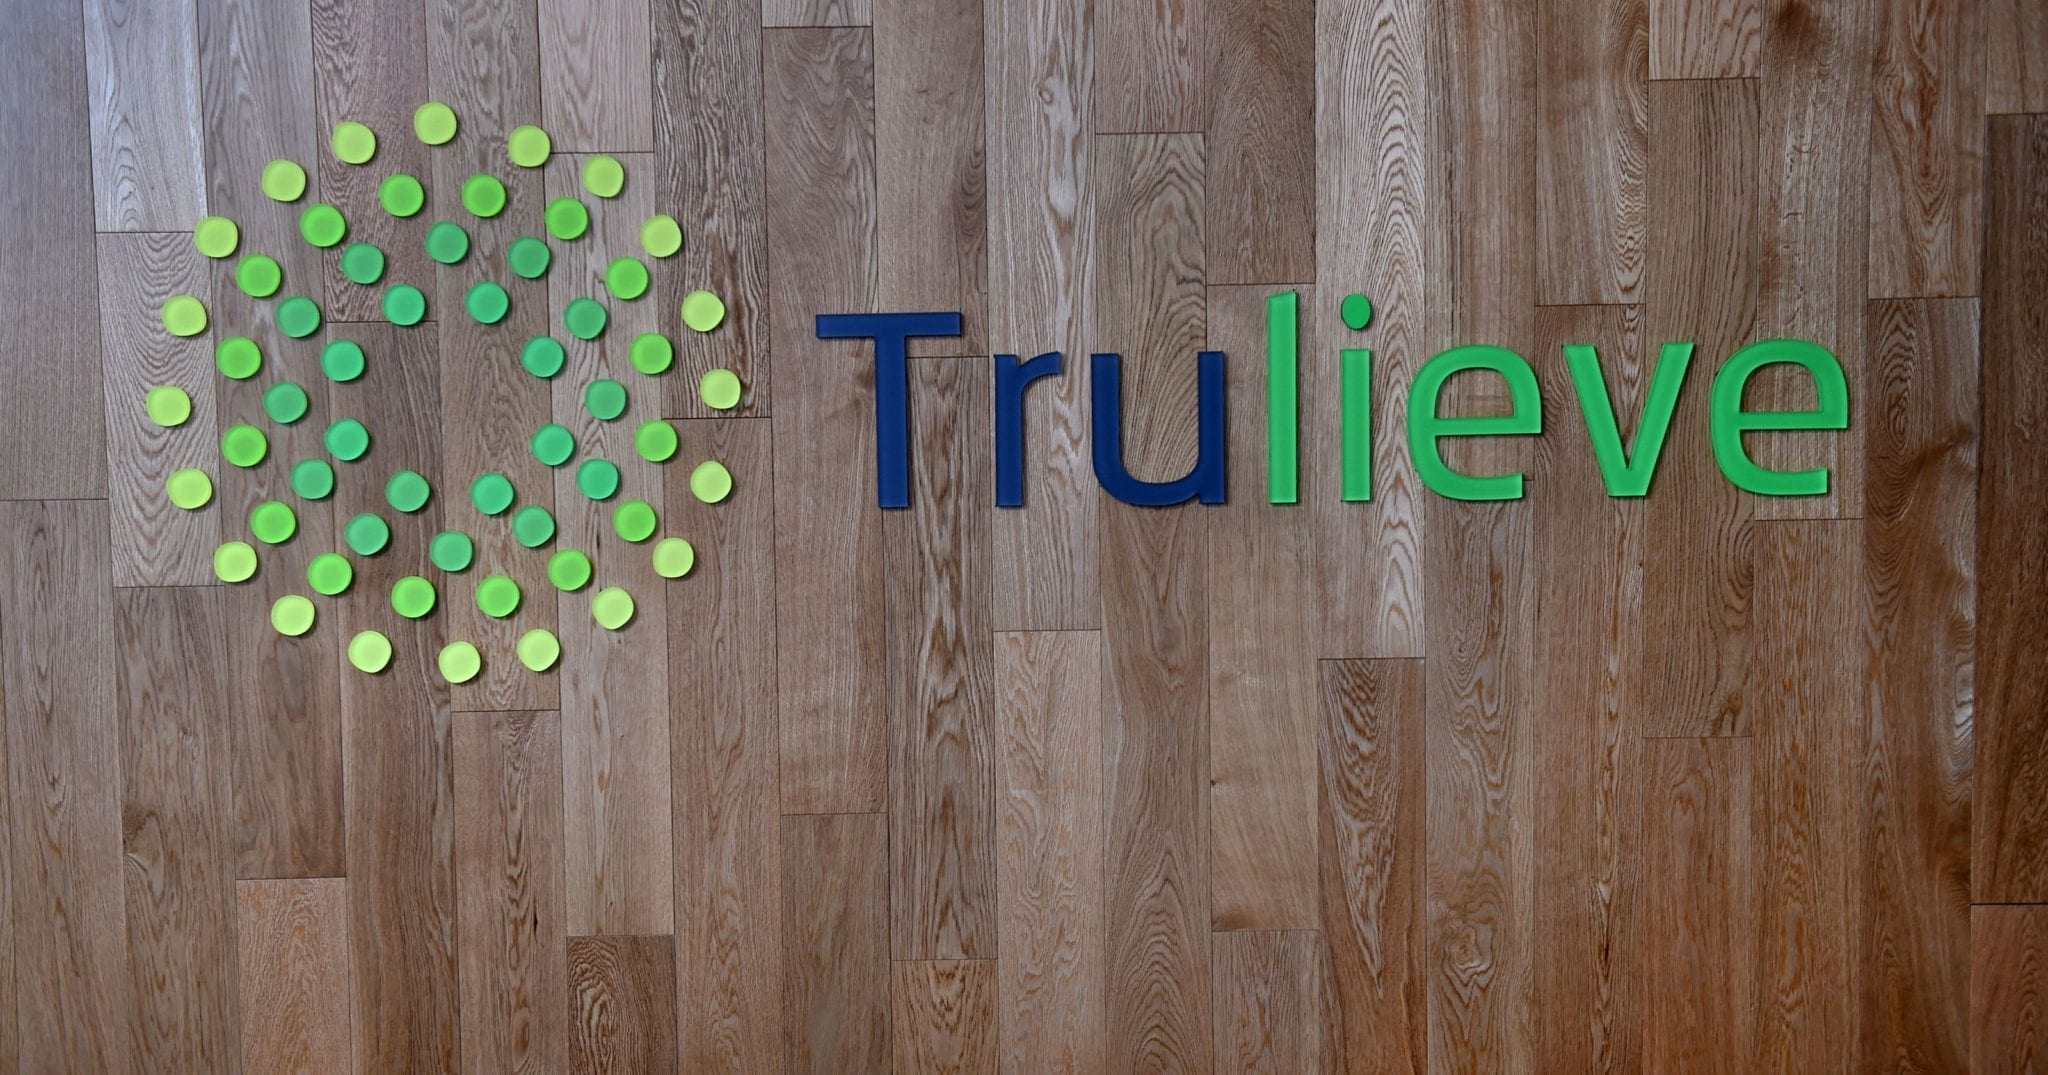 New location brings Trulieve's Florida store count to 52